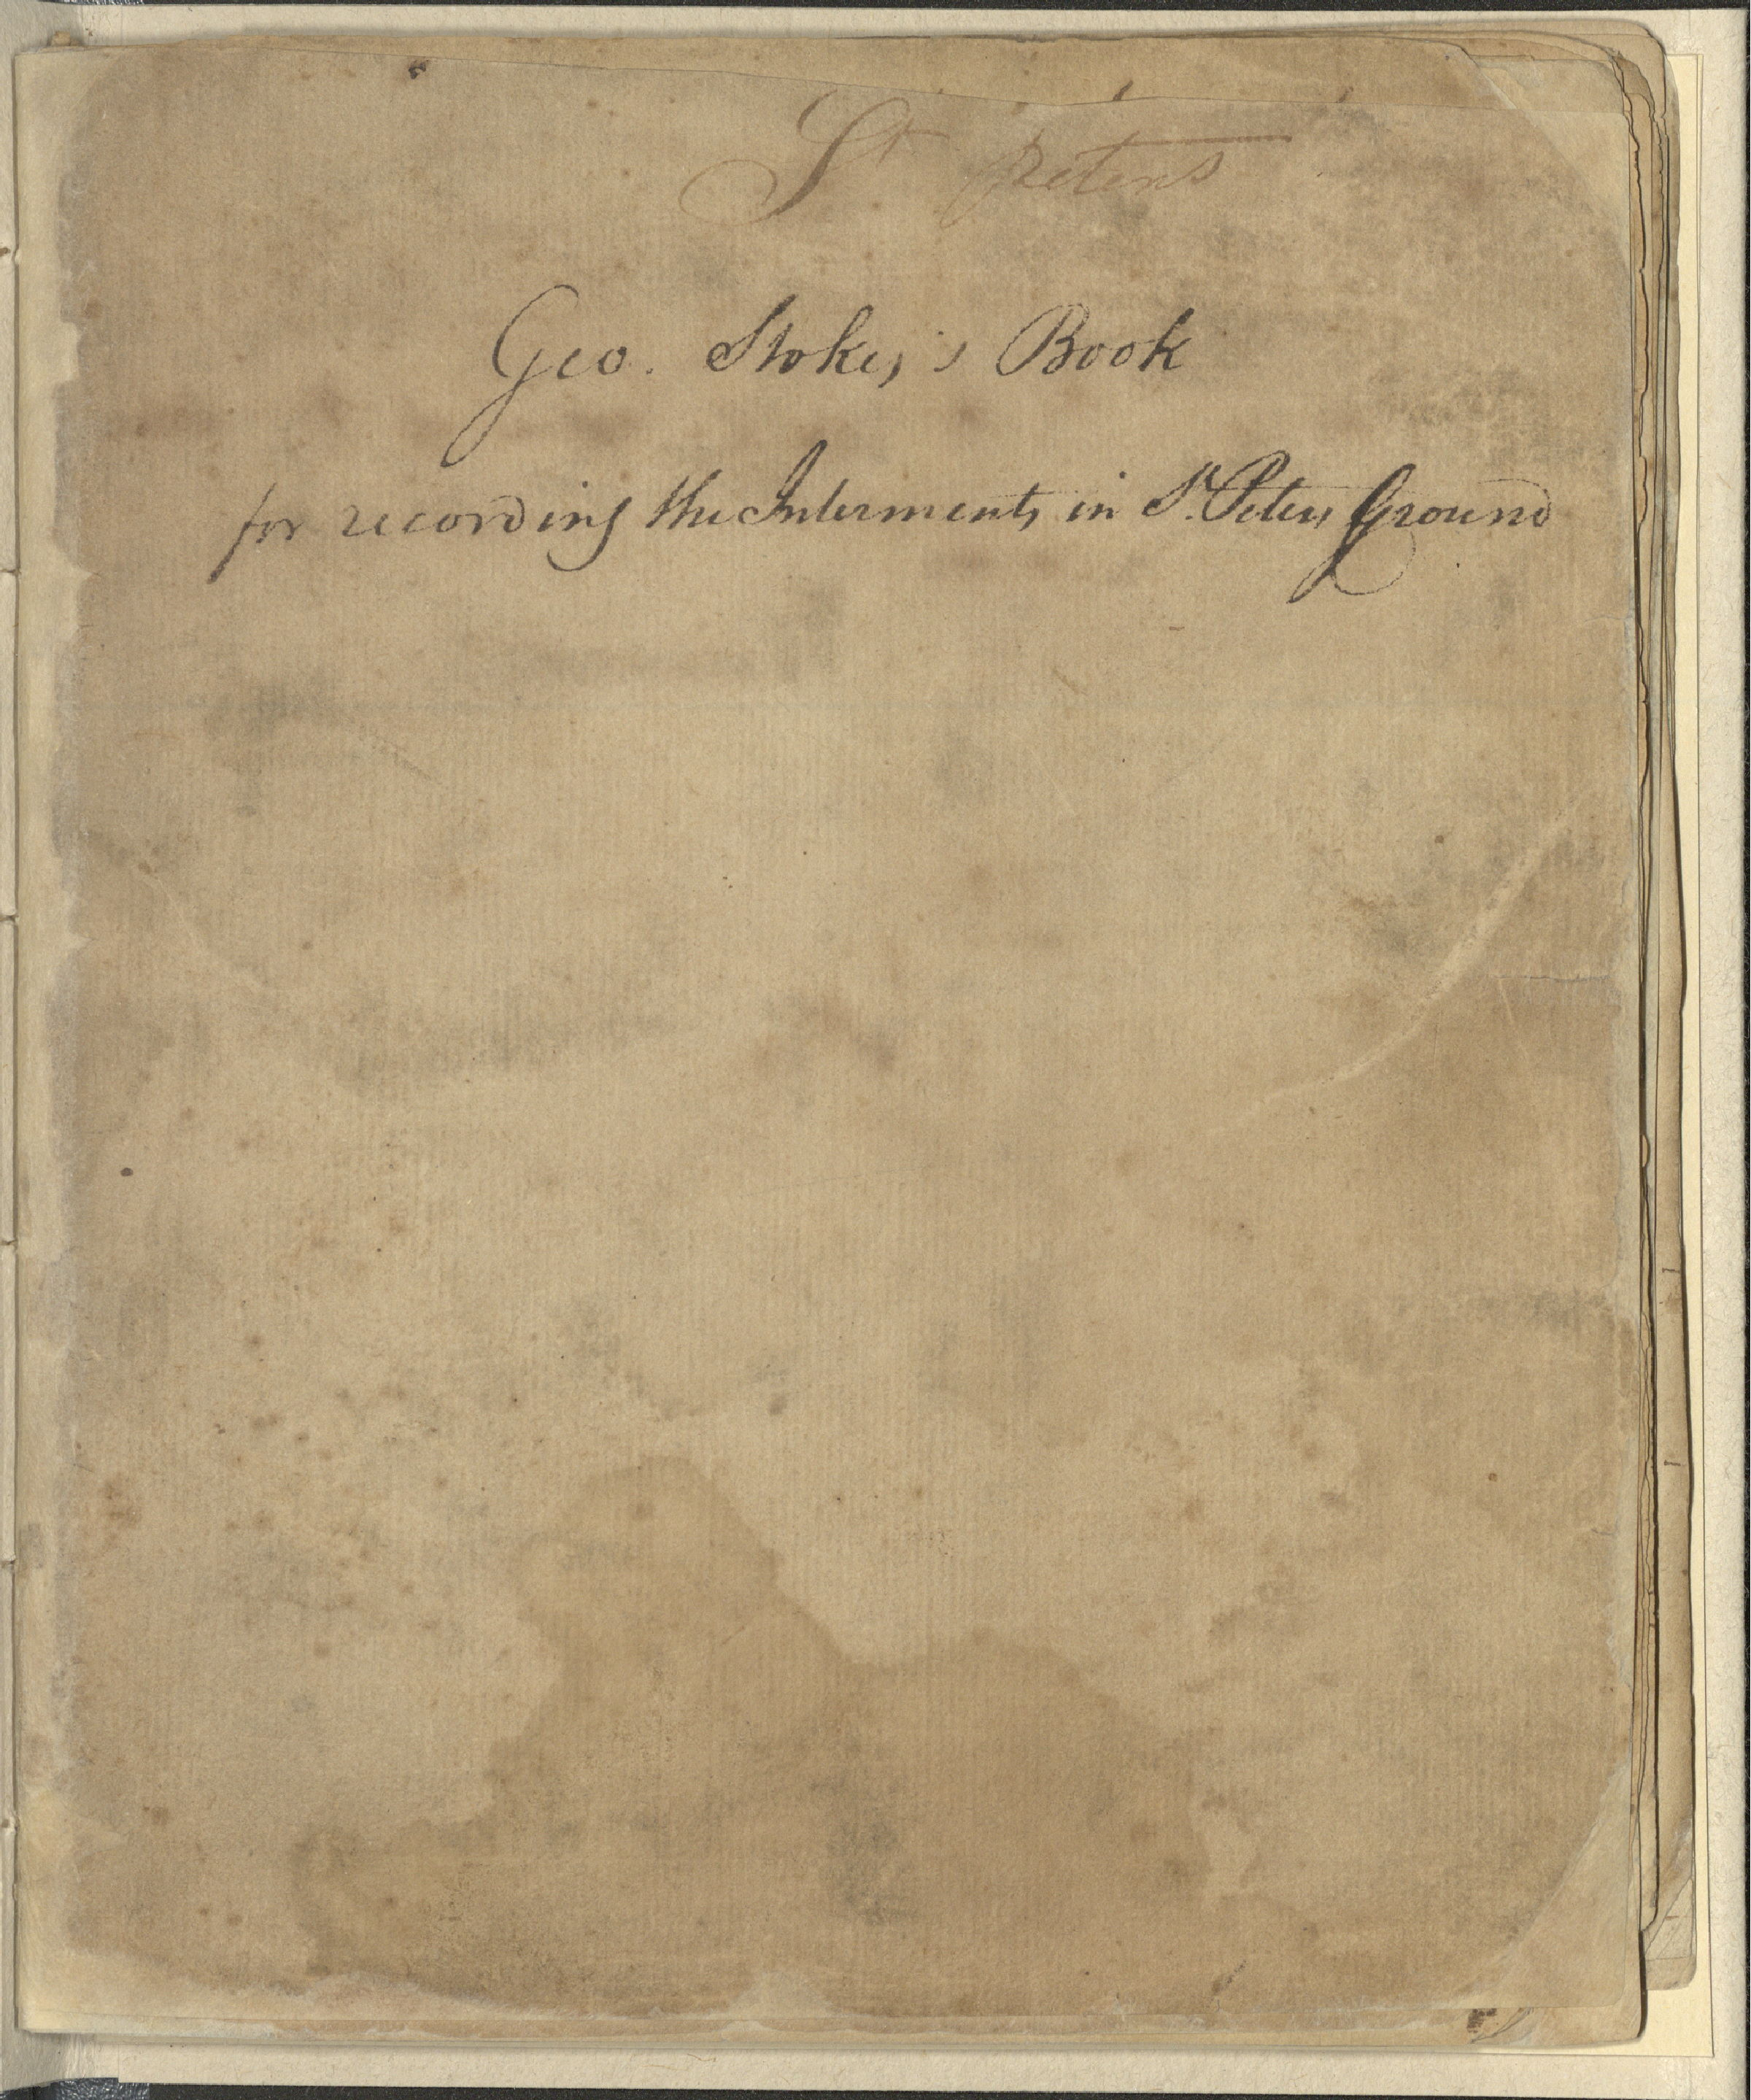 https://www.philageohistory.org/rdic-images/common/get-jpeg-book.cfm/ChristChurch.AccountingWardensStPetersSextonsBurials1789-1793_v368.001.jpg